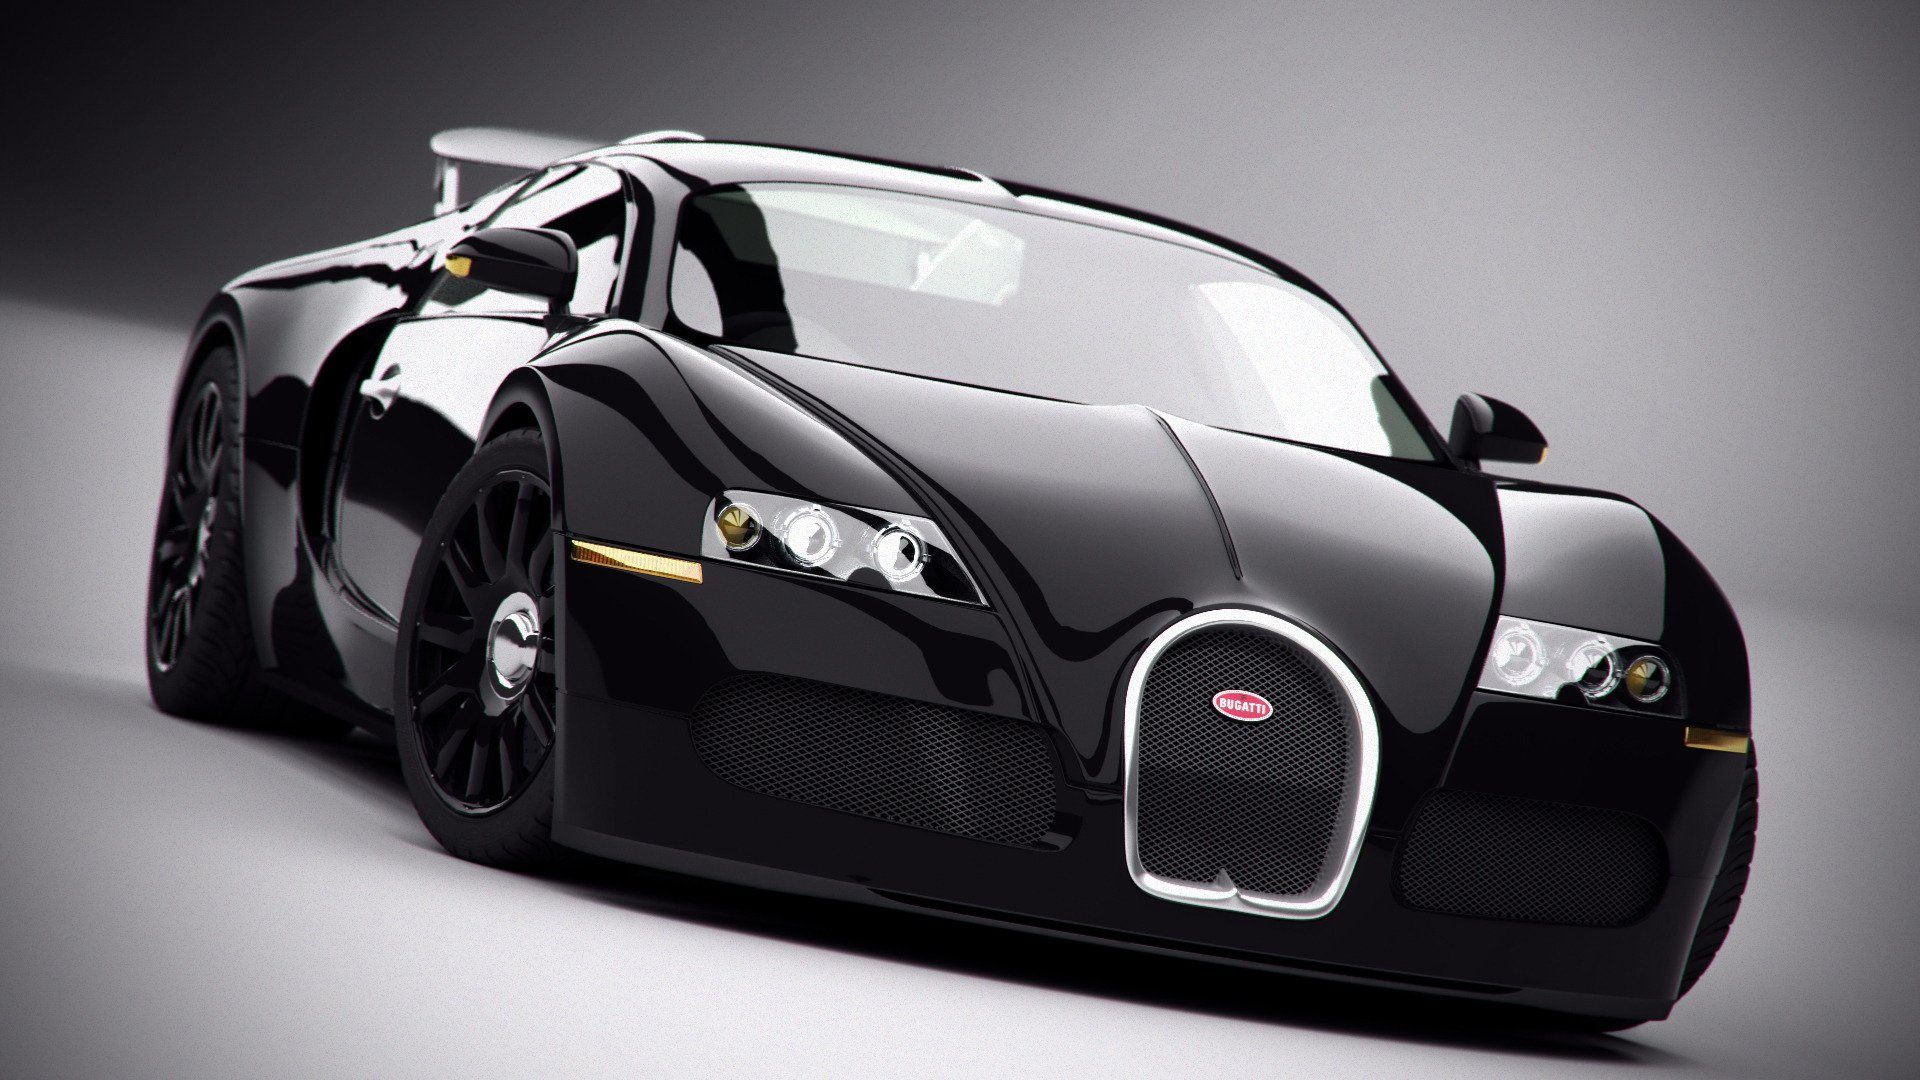 Black Sport Car 4742 Wallpaper Wallpaper Hd 1920x1080